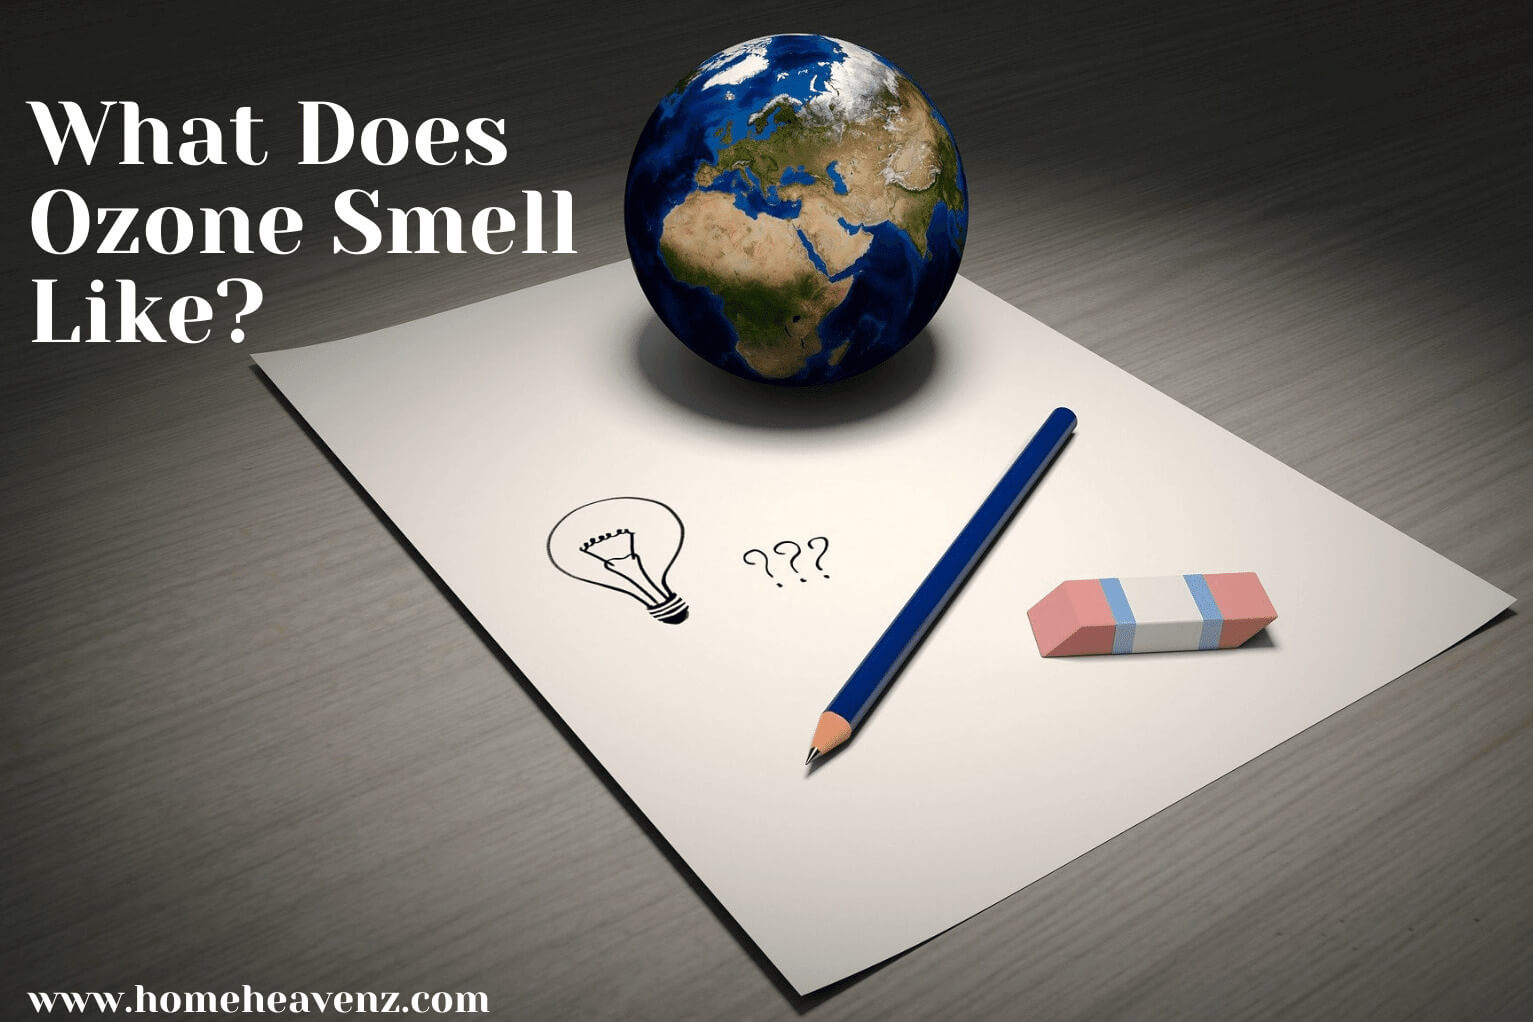 What Does Ozone Smell Like